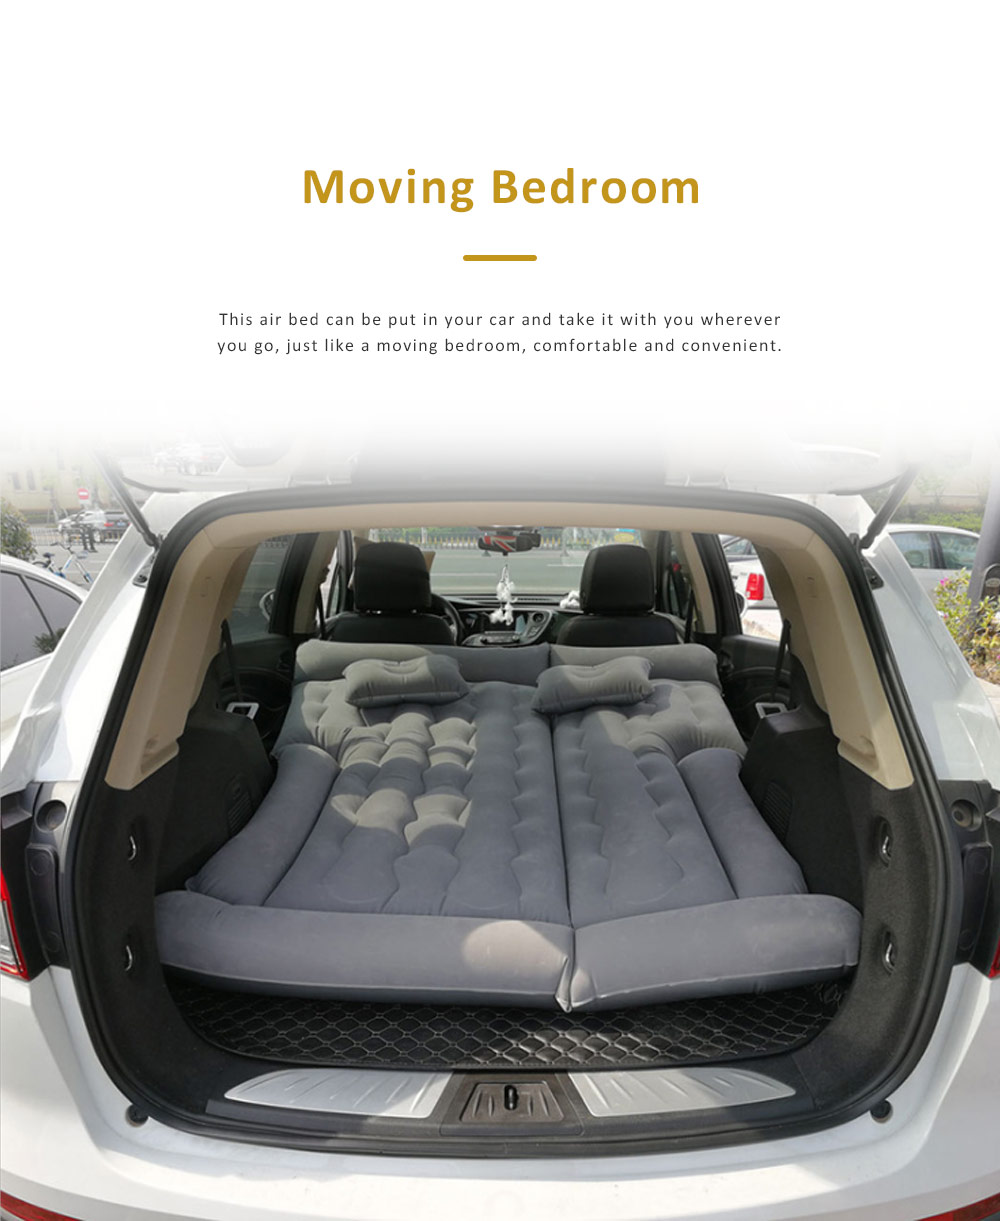 High Quality SUV Air Bed In-car for Traveling Camping Outdoor Activities, Flocking Fabric Sports Car Travel Mattress 1